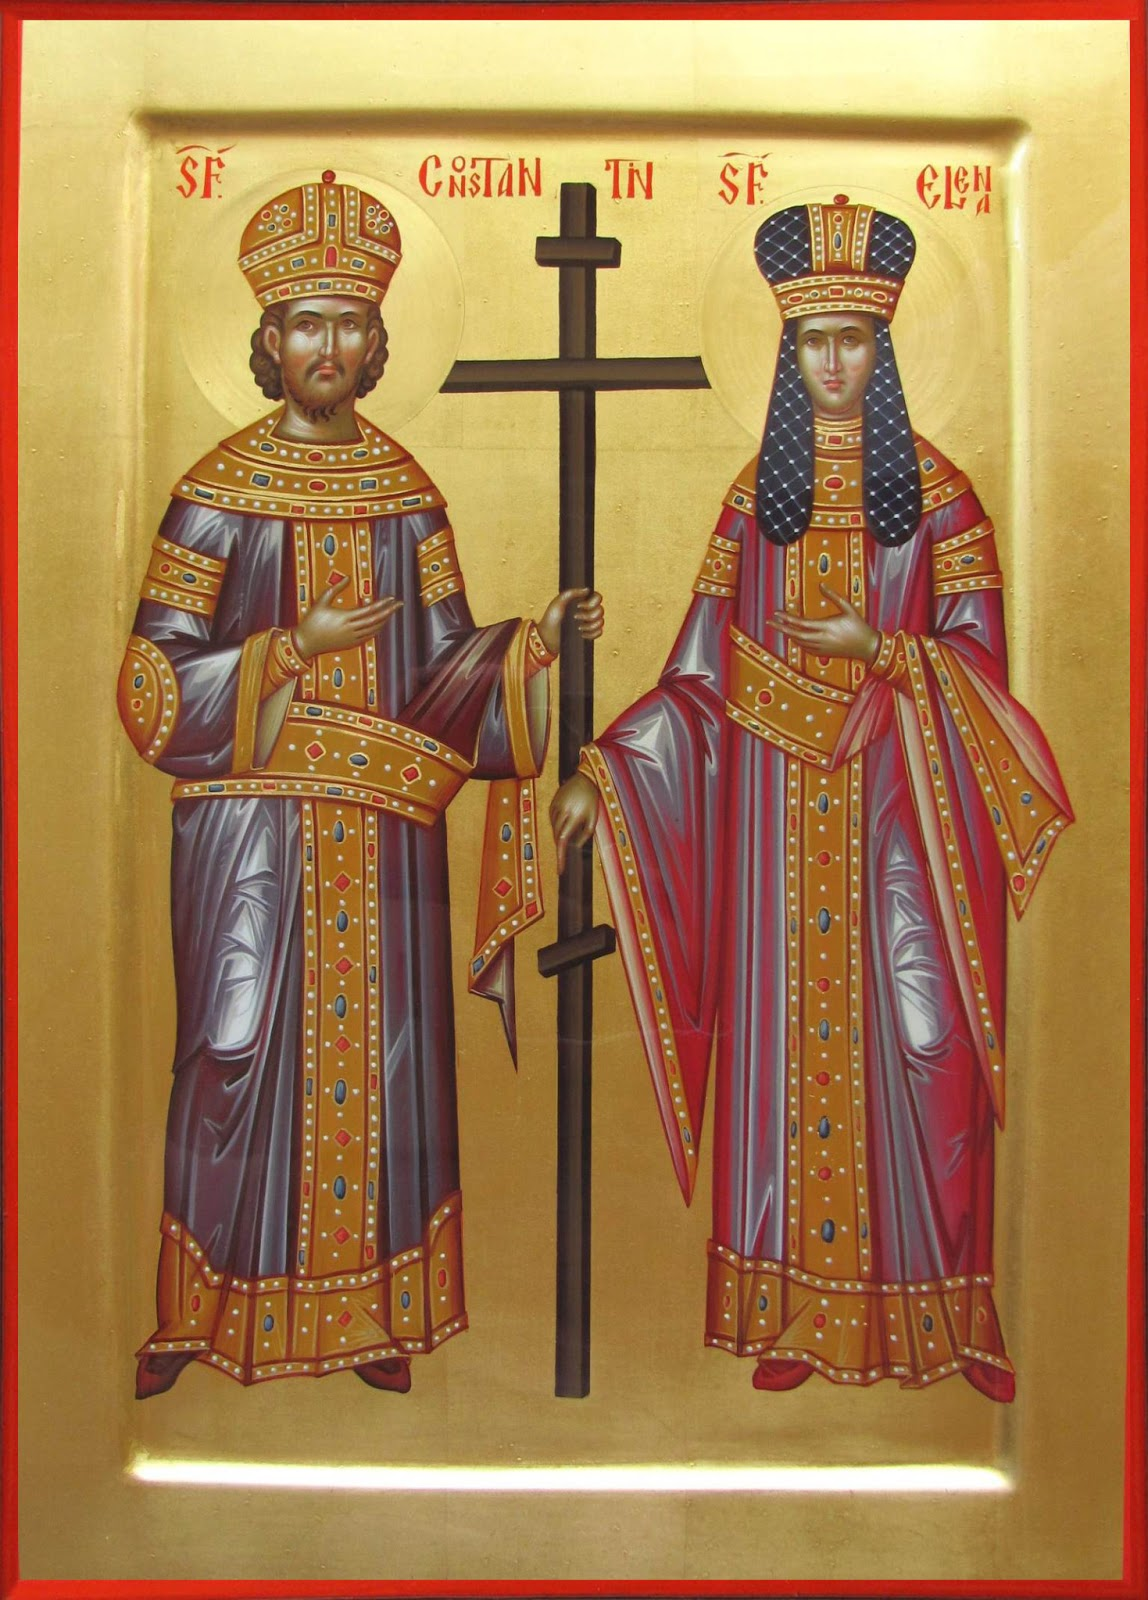 Holy God Crowned Sovereigns and Equal to the Apostles, Constantine and Helen pray to God for us!